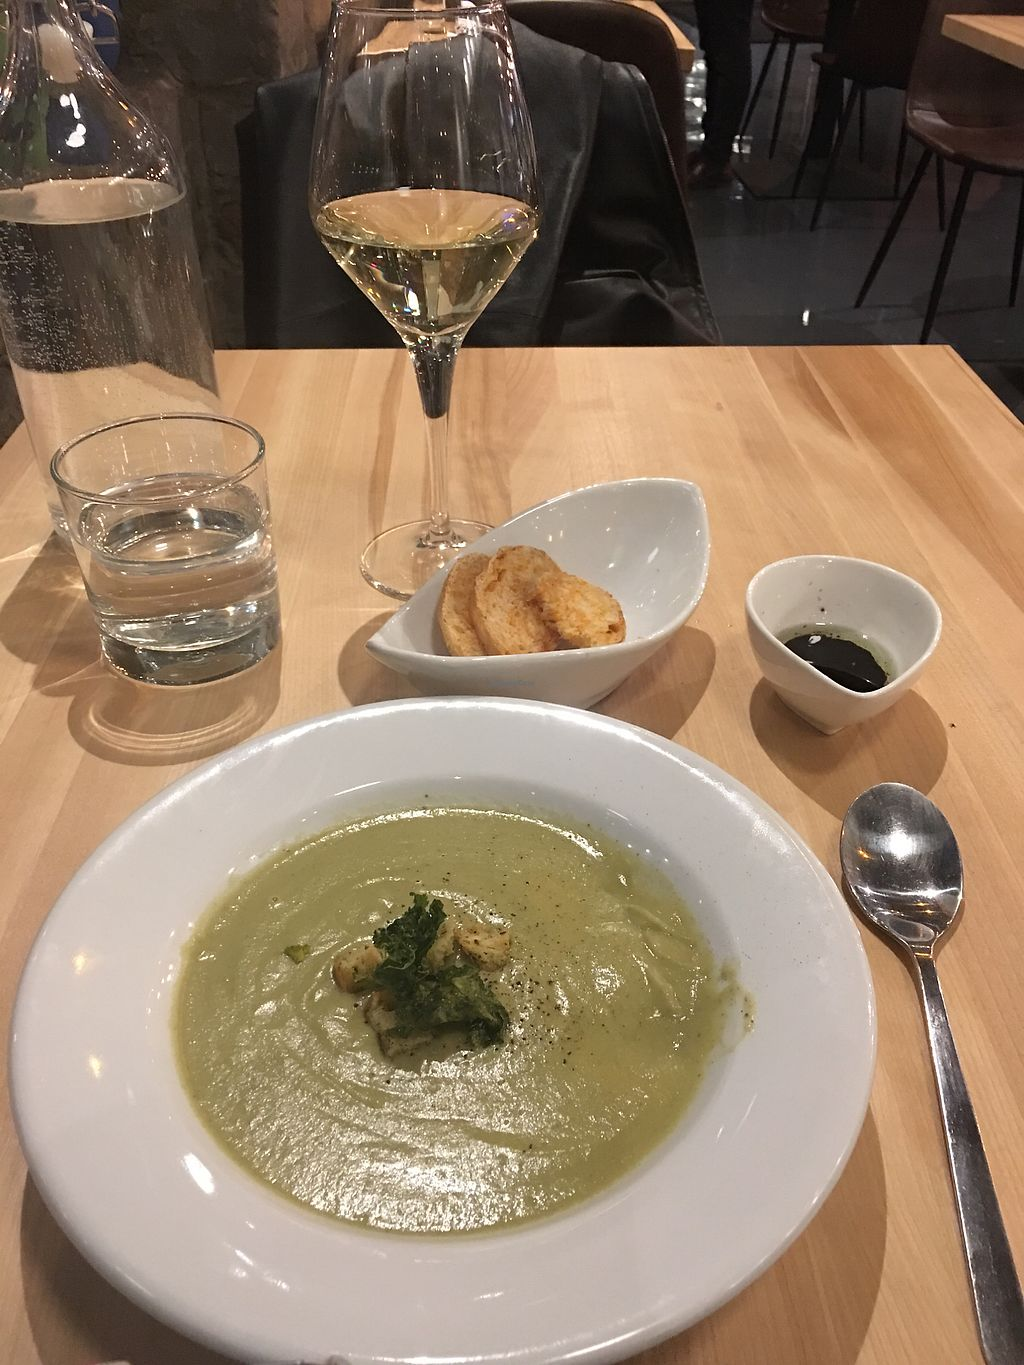 """Photo of Invitation V Vegan Bistro  by <a href=""""/members/profile/TEE427"""">TEE427</a> <br/>InvitationV- Broccoli soup was yum <br/> November 29, 2017  - <a href='/contact/abuse/image/38634/330474'>Report</a>"""